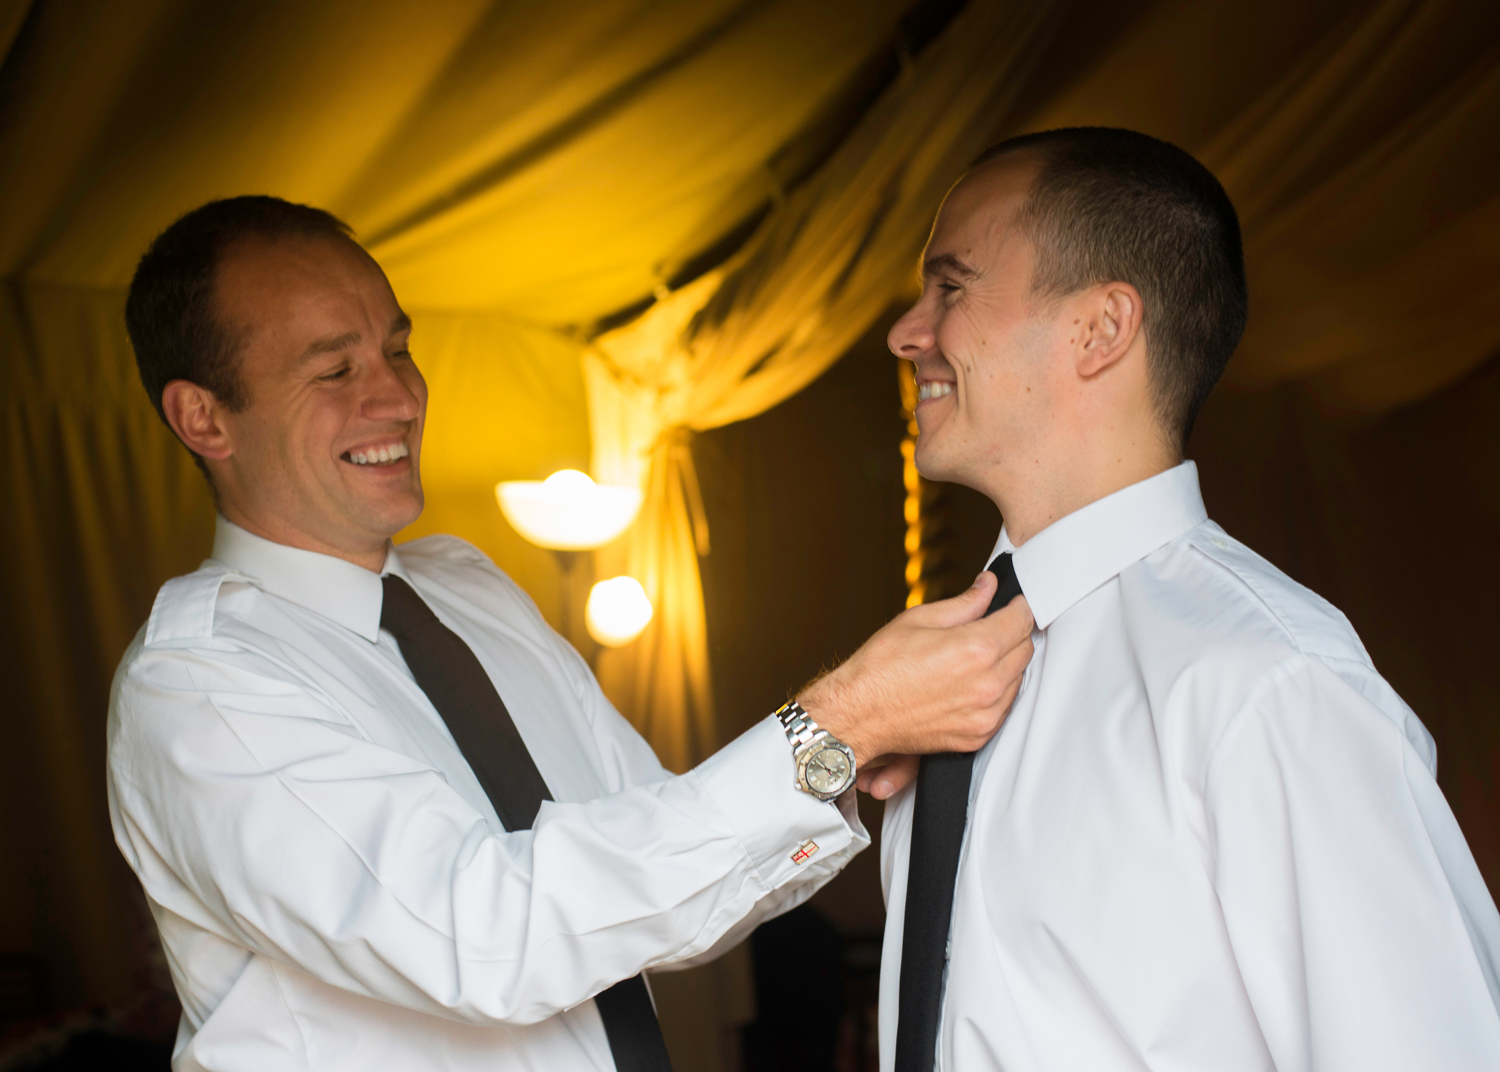 Best man helping the Groom prepare |Pentre Mawr